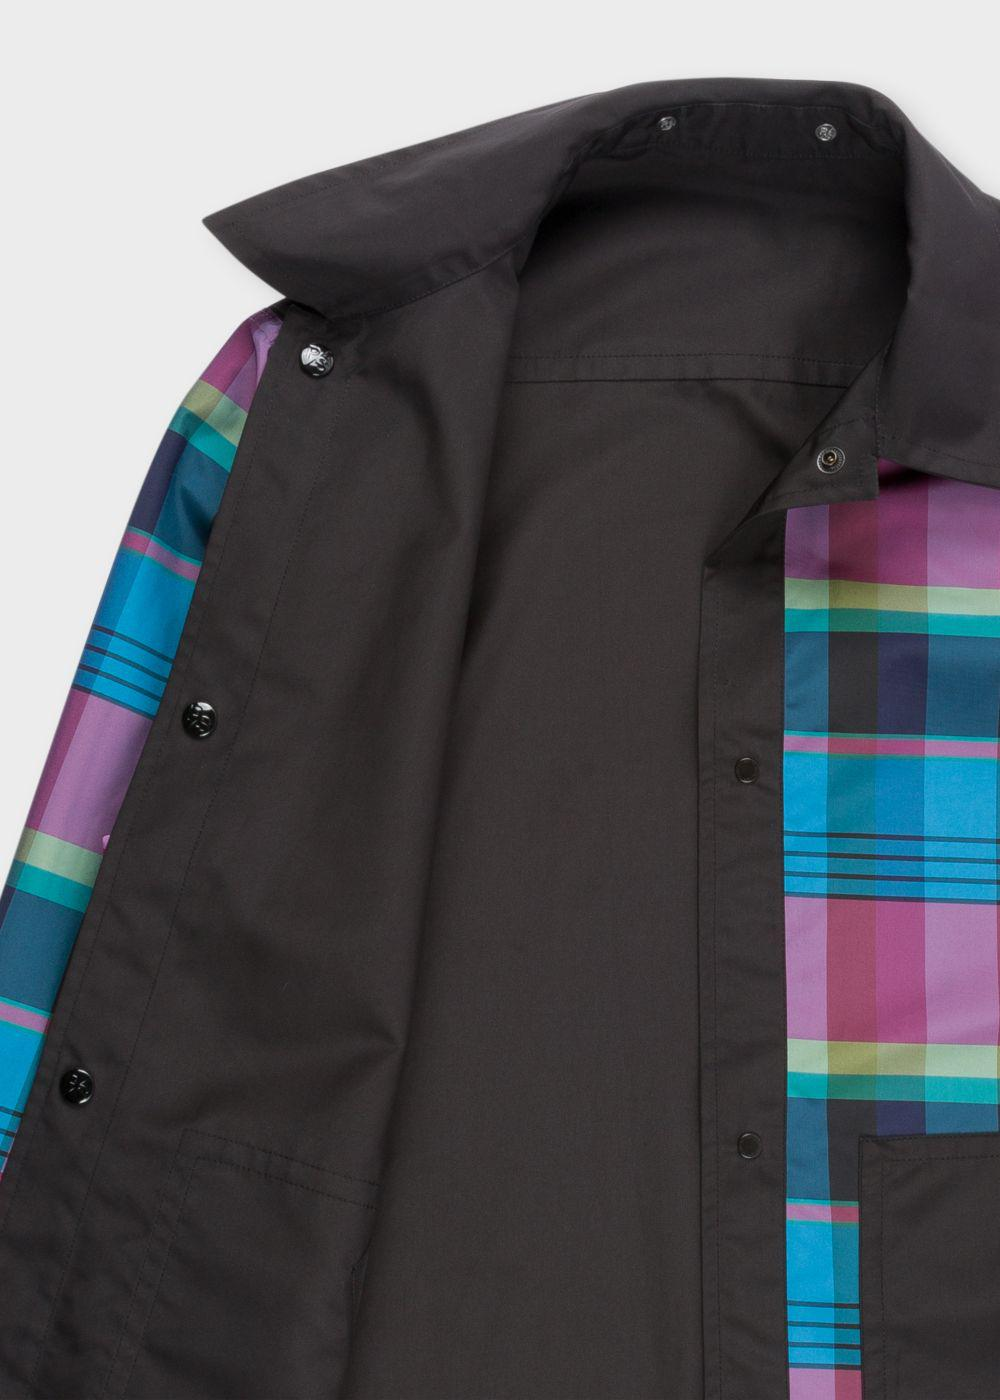 Paul Smith Synthetic Men's Black And Multi-Coloured Check Reversible Long Coach Jacket for Men